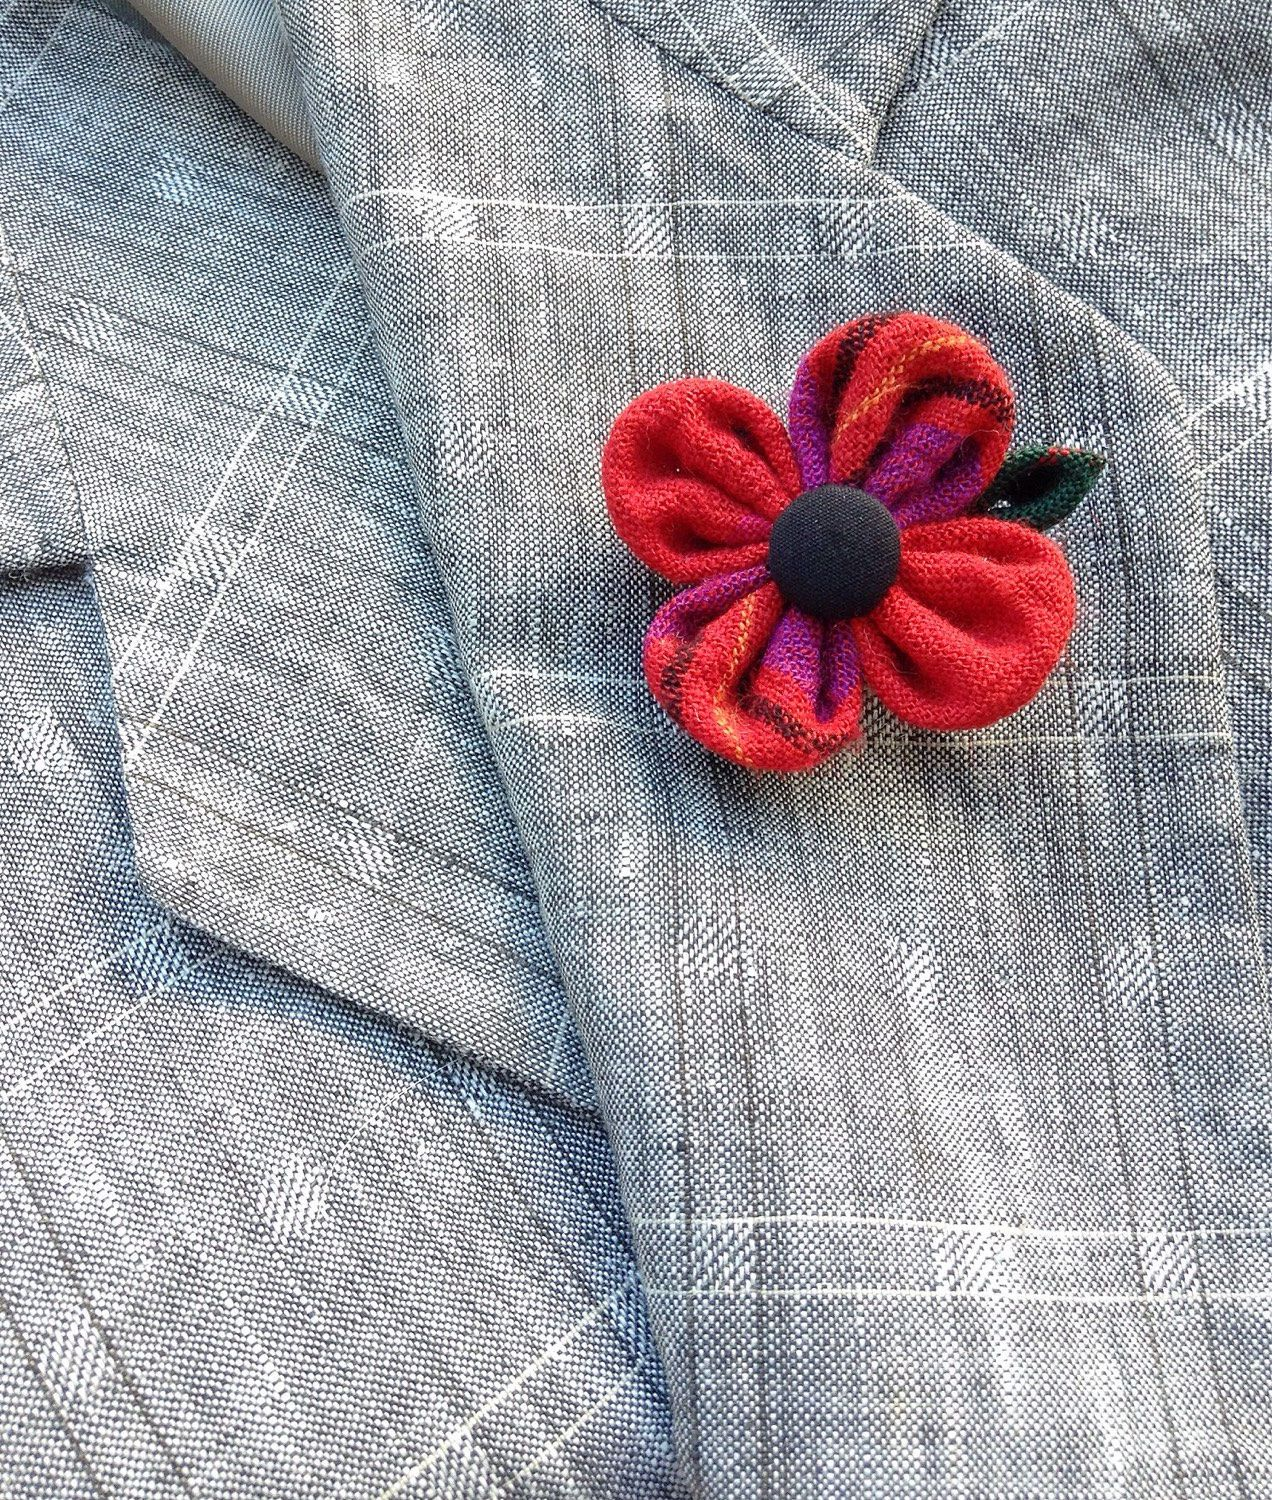 Custom Lapel Pins Mens Lapel Pin Flower Lapel Pin Red Poppy Lapel